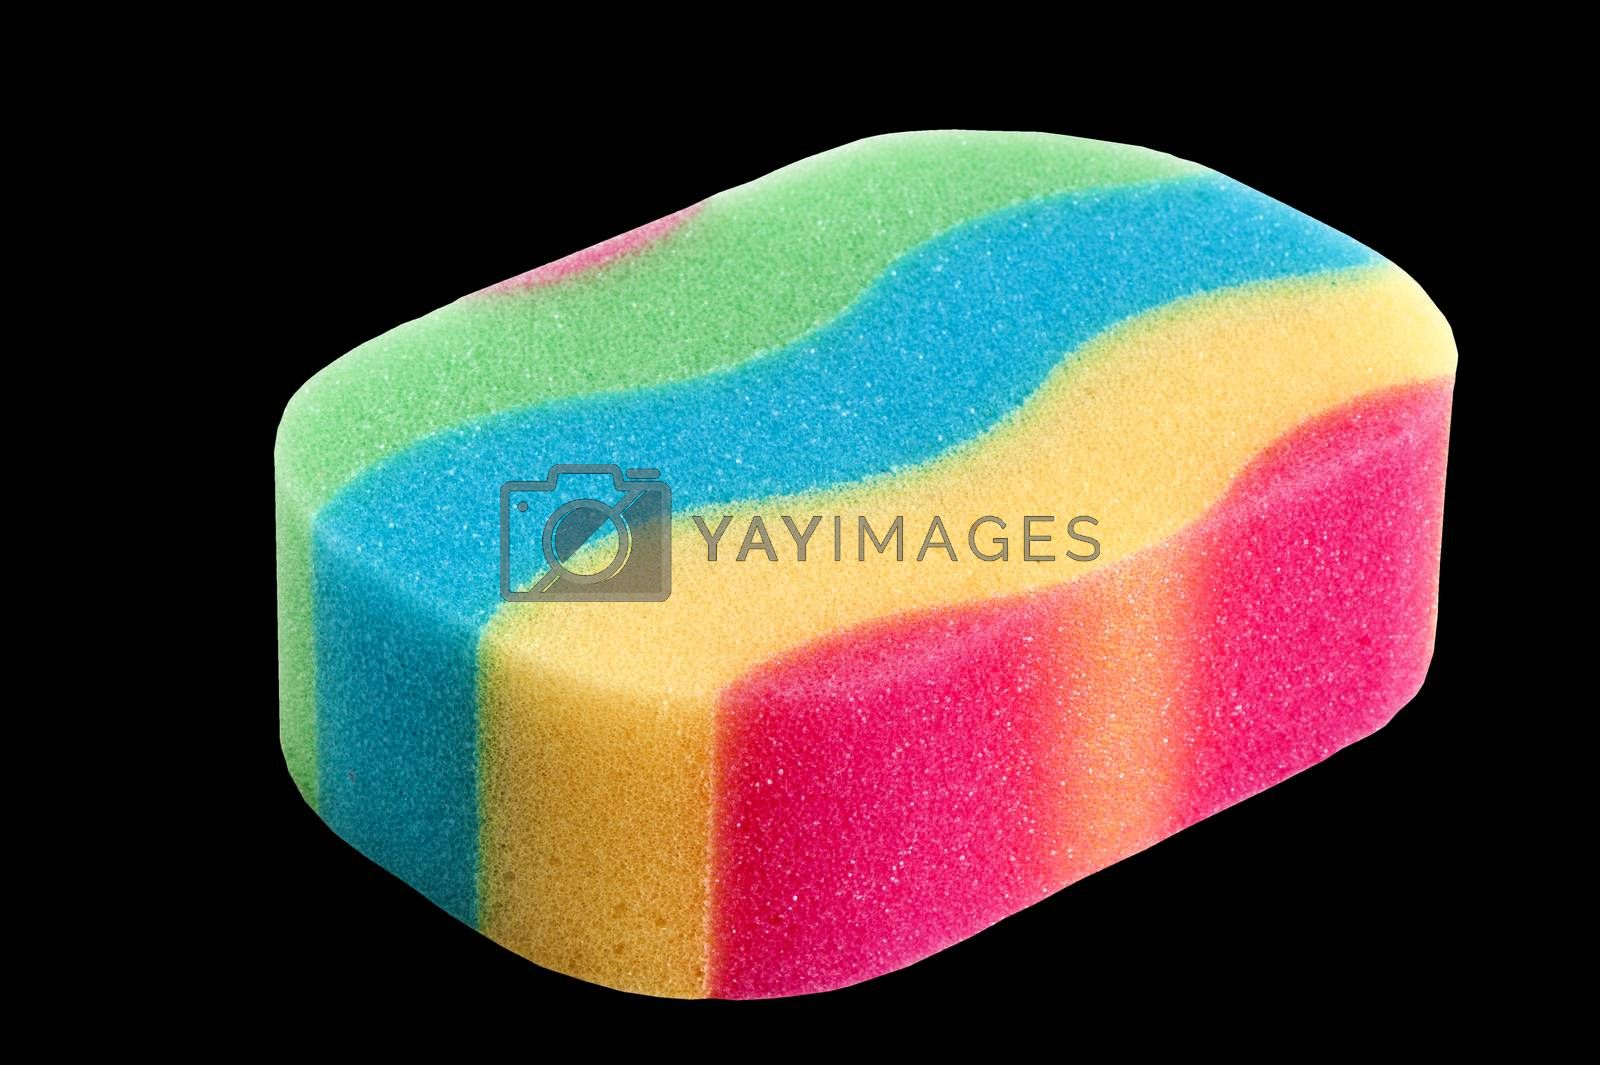 a  colored sponge  on a  black background